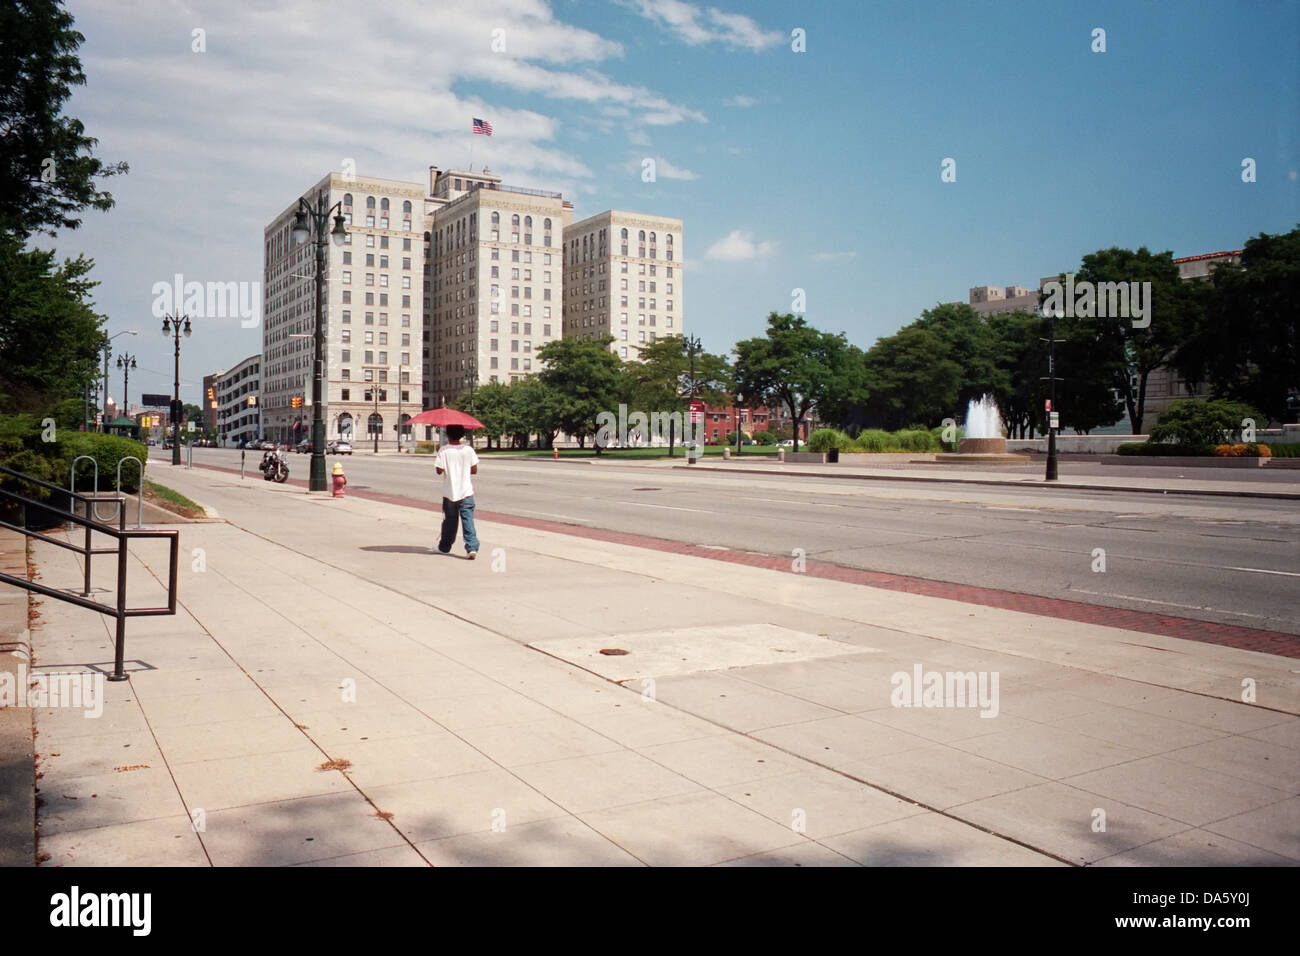 Man walks west on Woodward Avenue in Midtown Detroit with a red umbrella - Stock Image